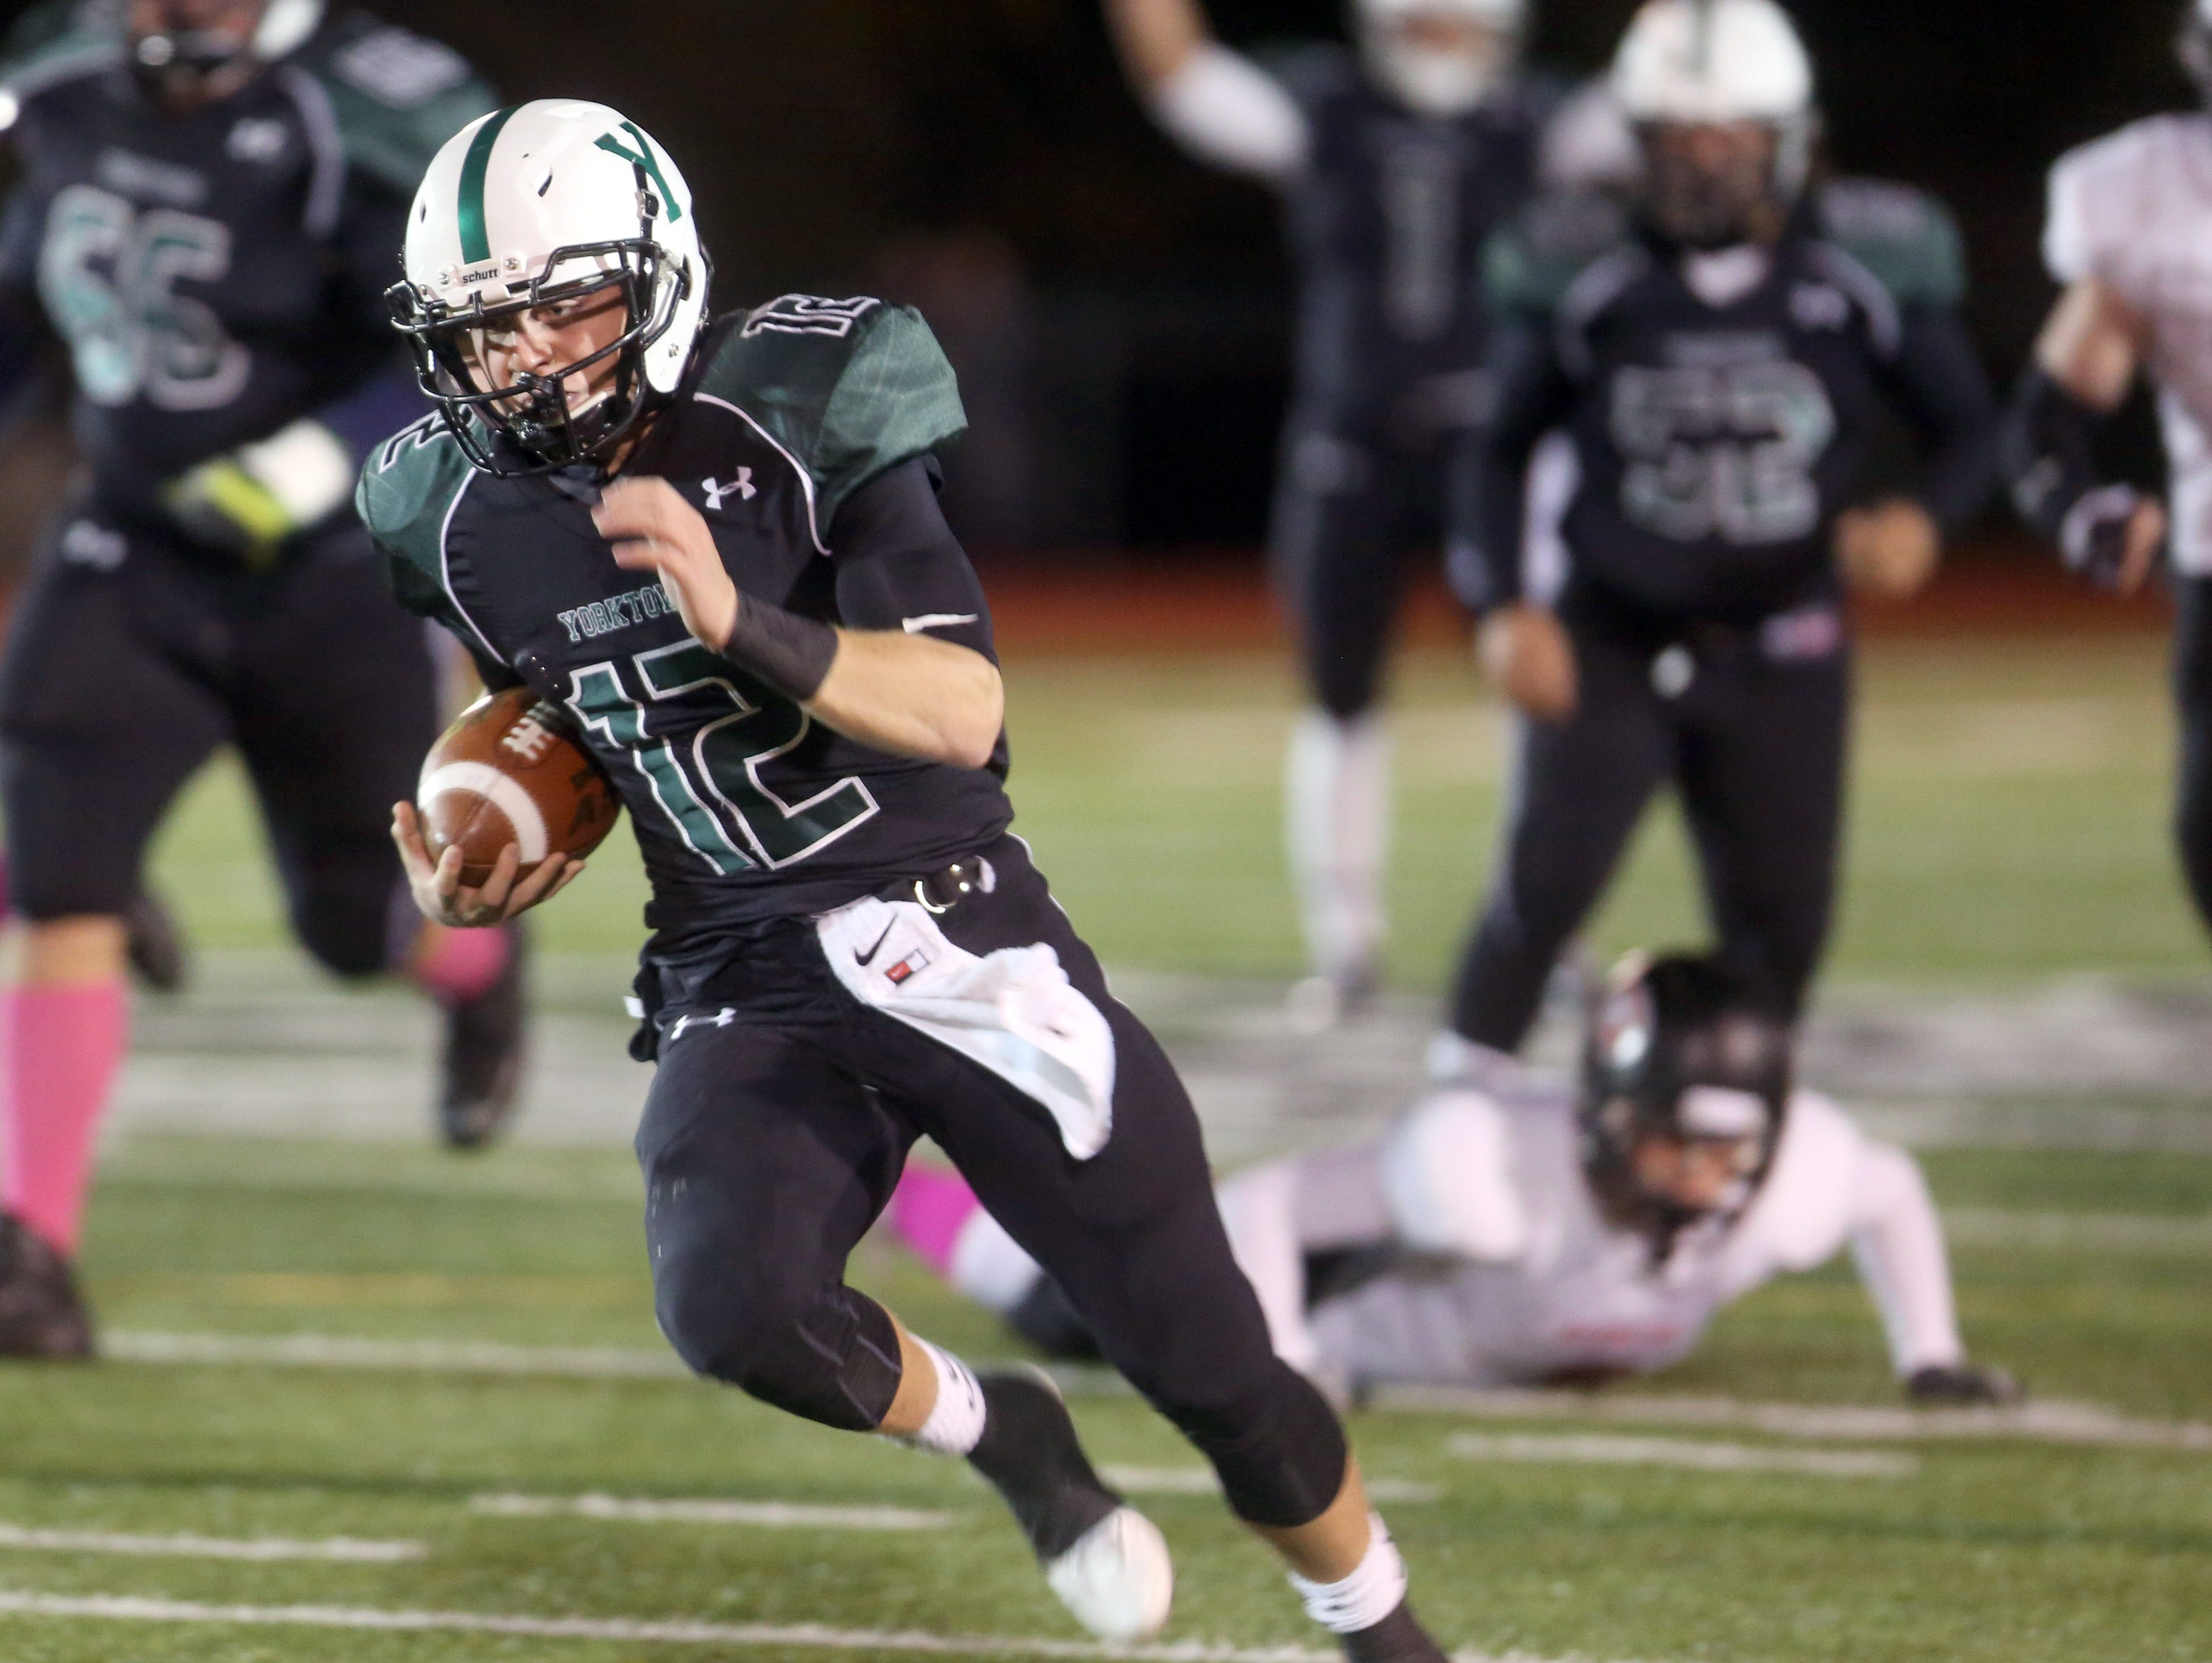 Yorktown quarterback Jose Boyer breaks free for a 50-touchdown run during the first quarter of a Class A semifinal football game against Rye at Yorktown High School Oct. 28, 2016. Yorktown defeated Rye 66-42.